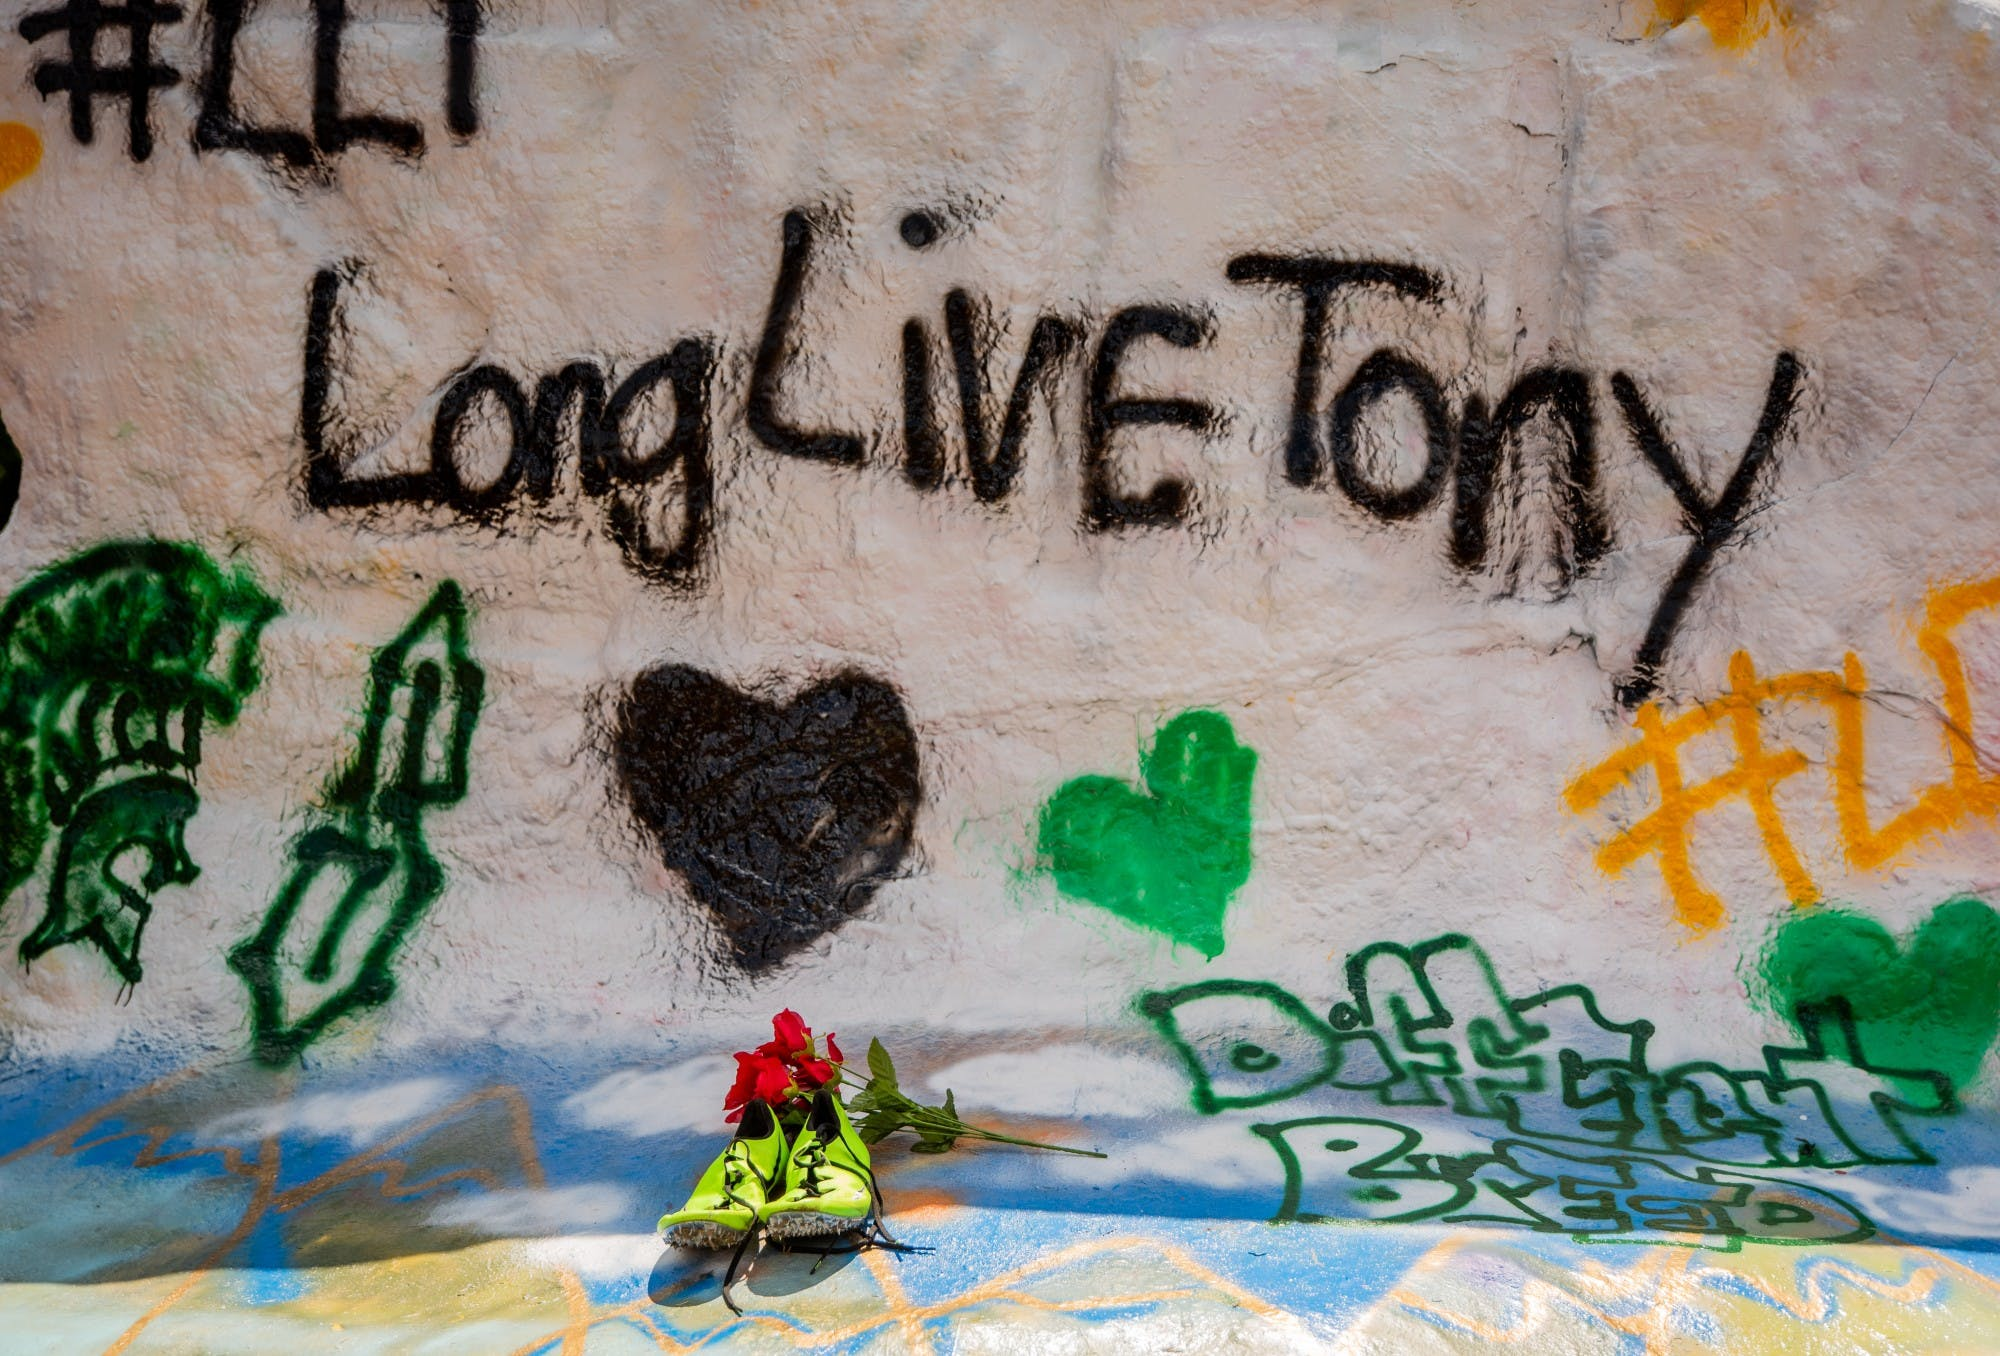 A pair of running shoes and red flowers sit in front of a painted rock that reads 'Long live Tony.'